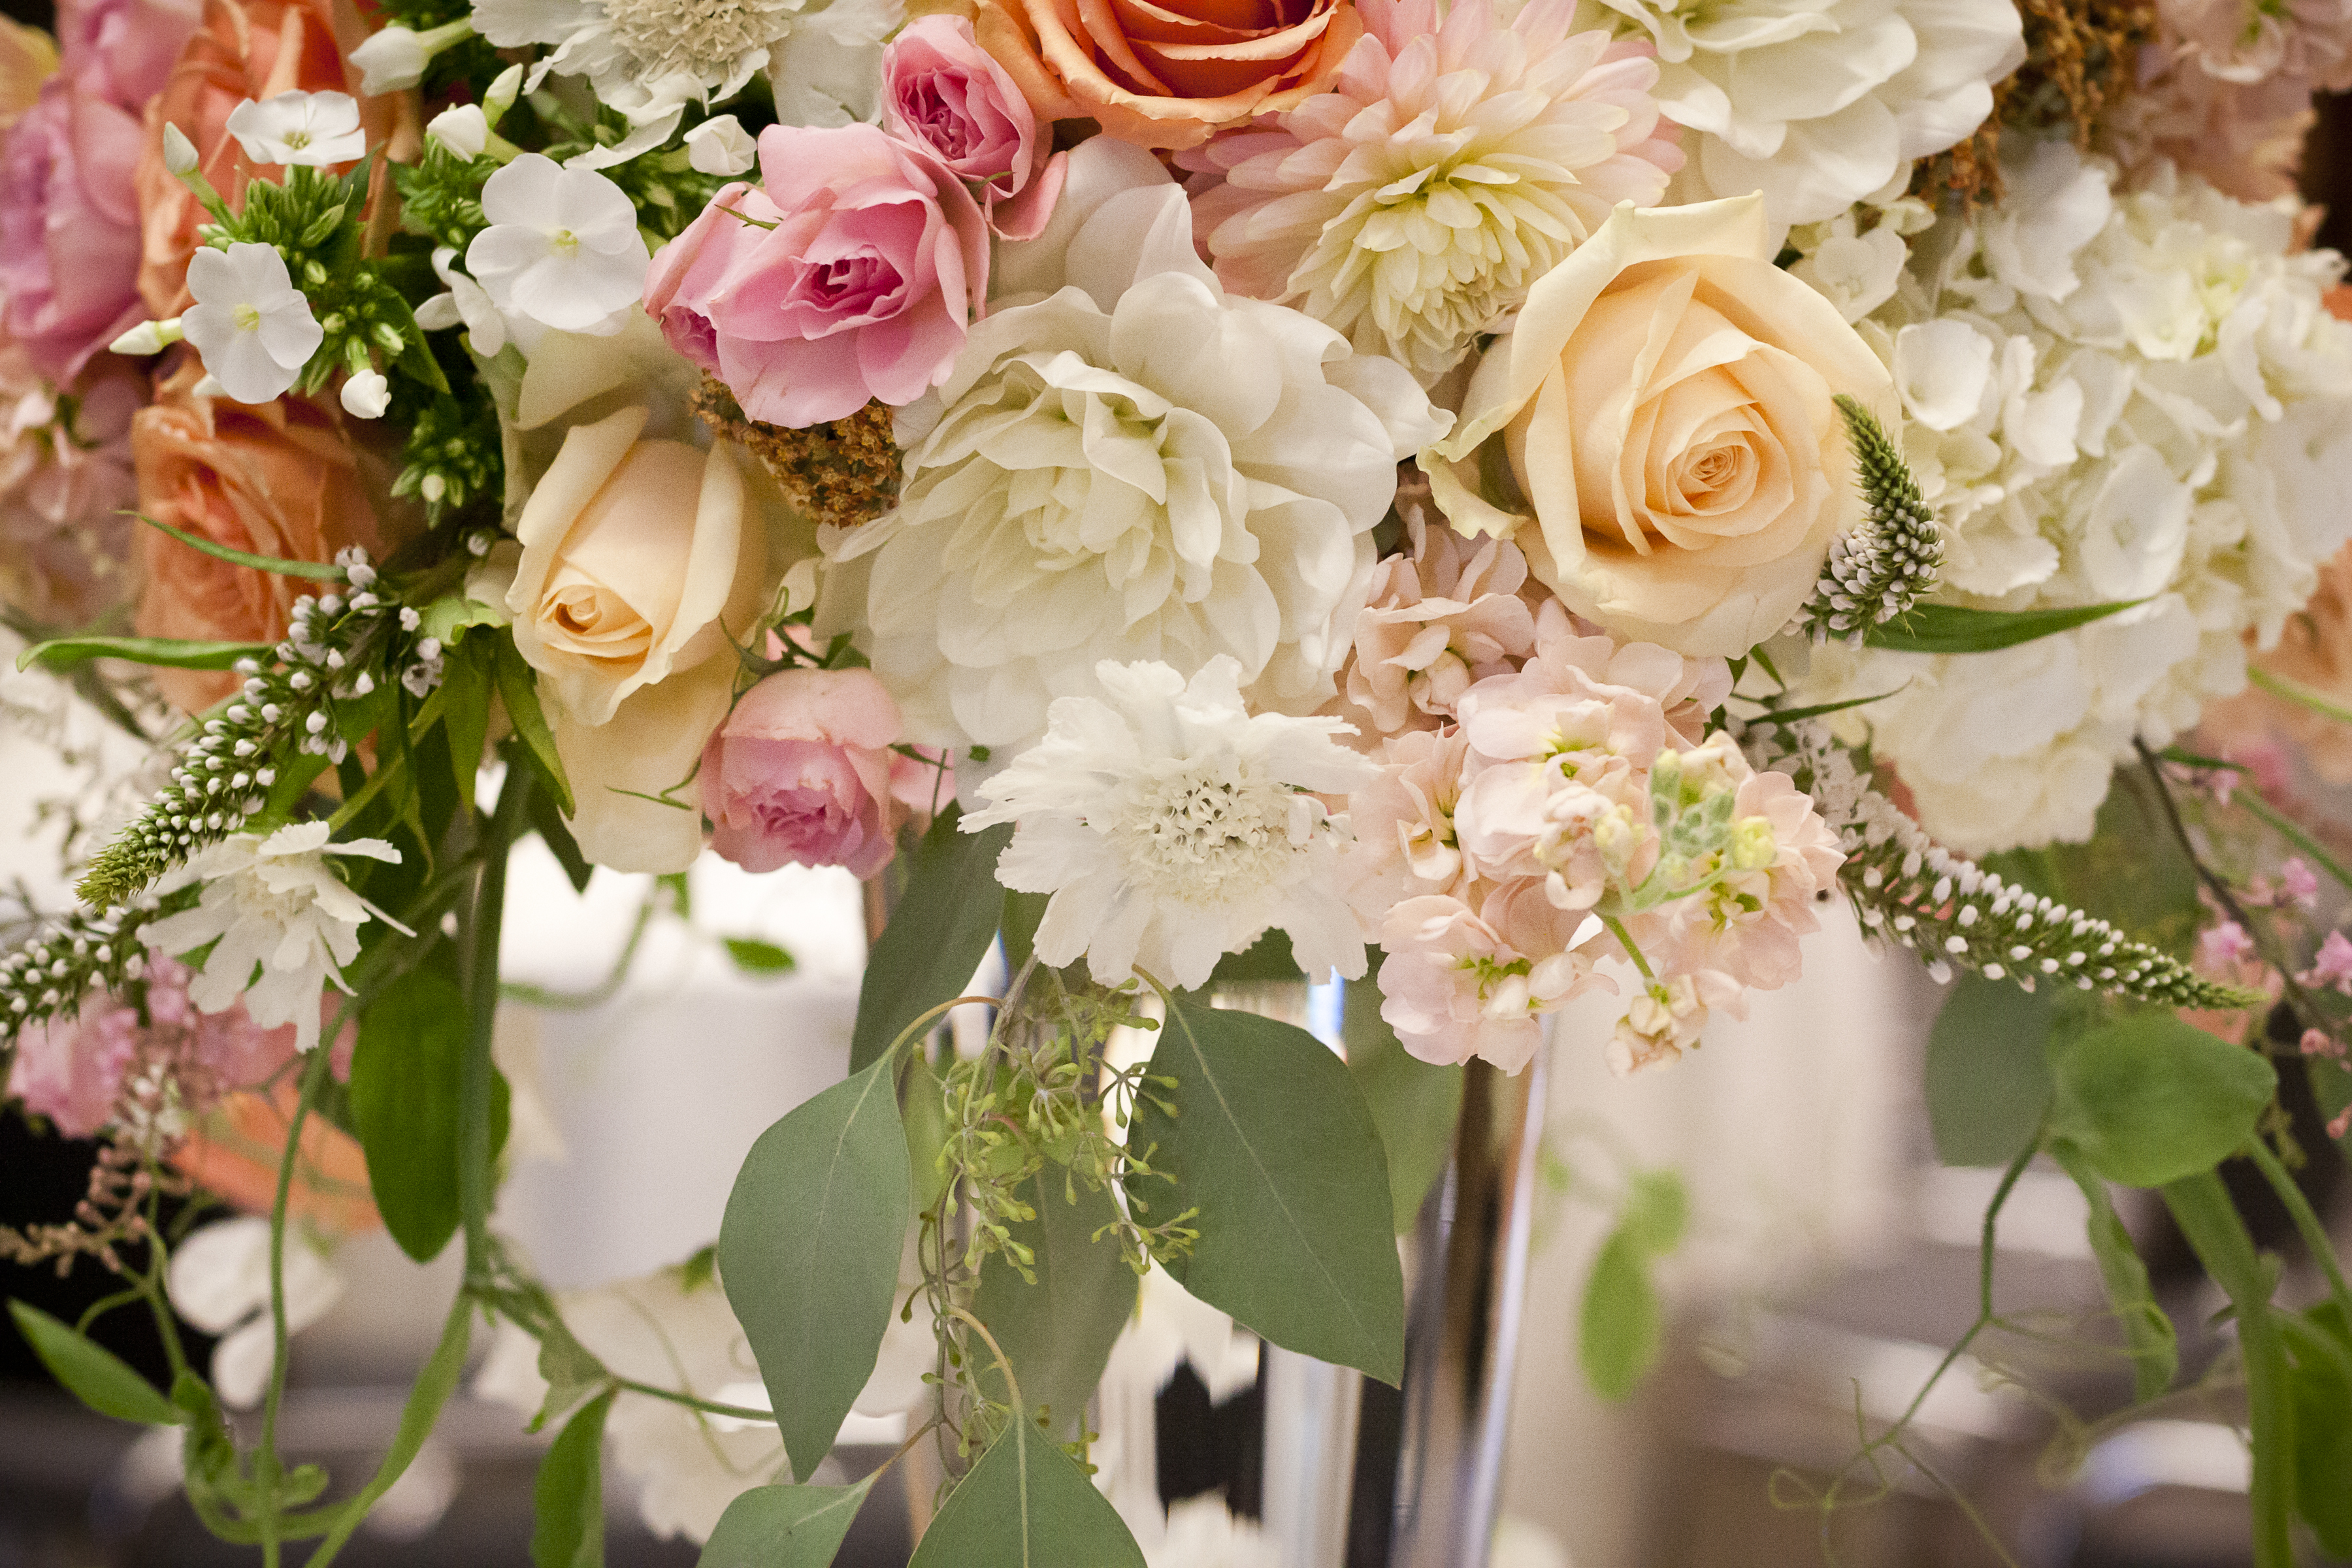 Image Of Wedding Centerpiece With Dahlia Rose Sweet Pea And Scabiosa